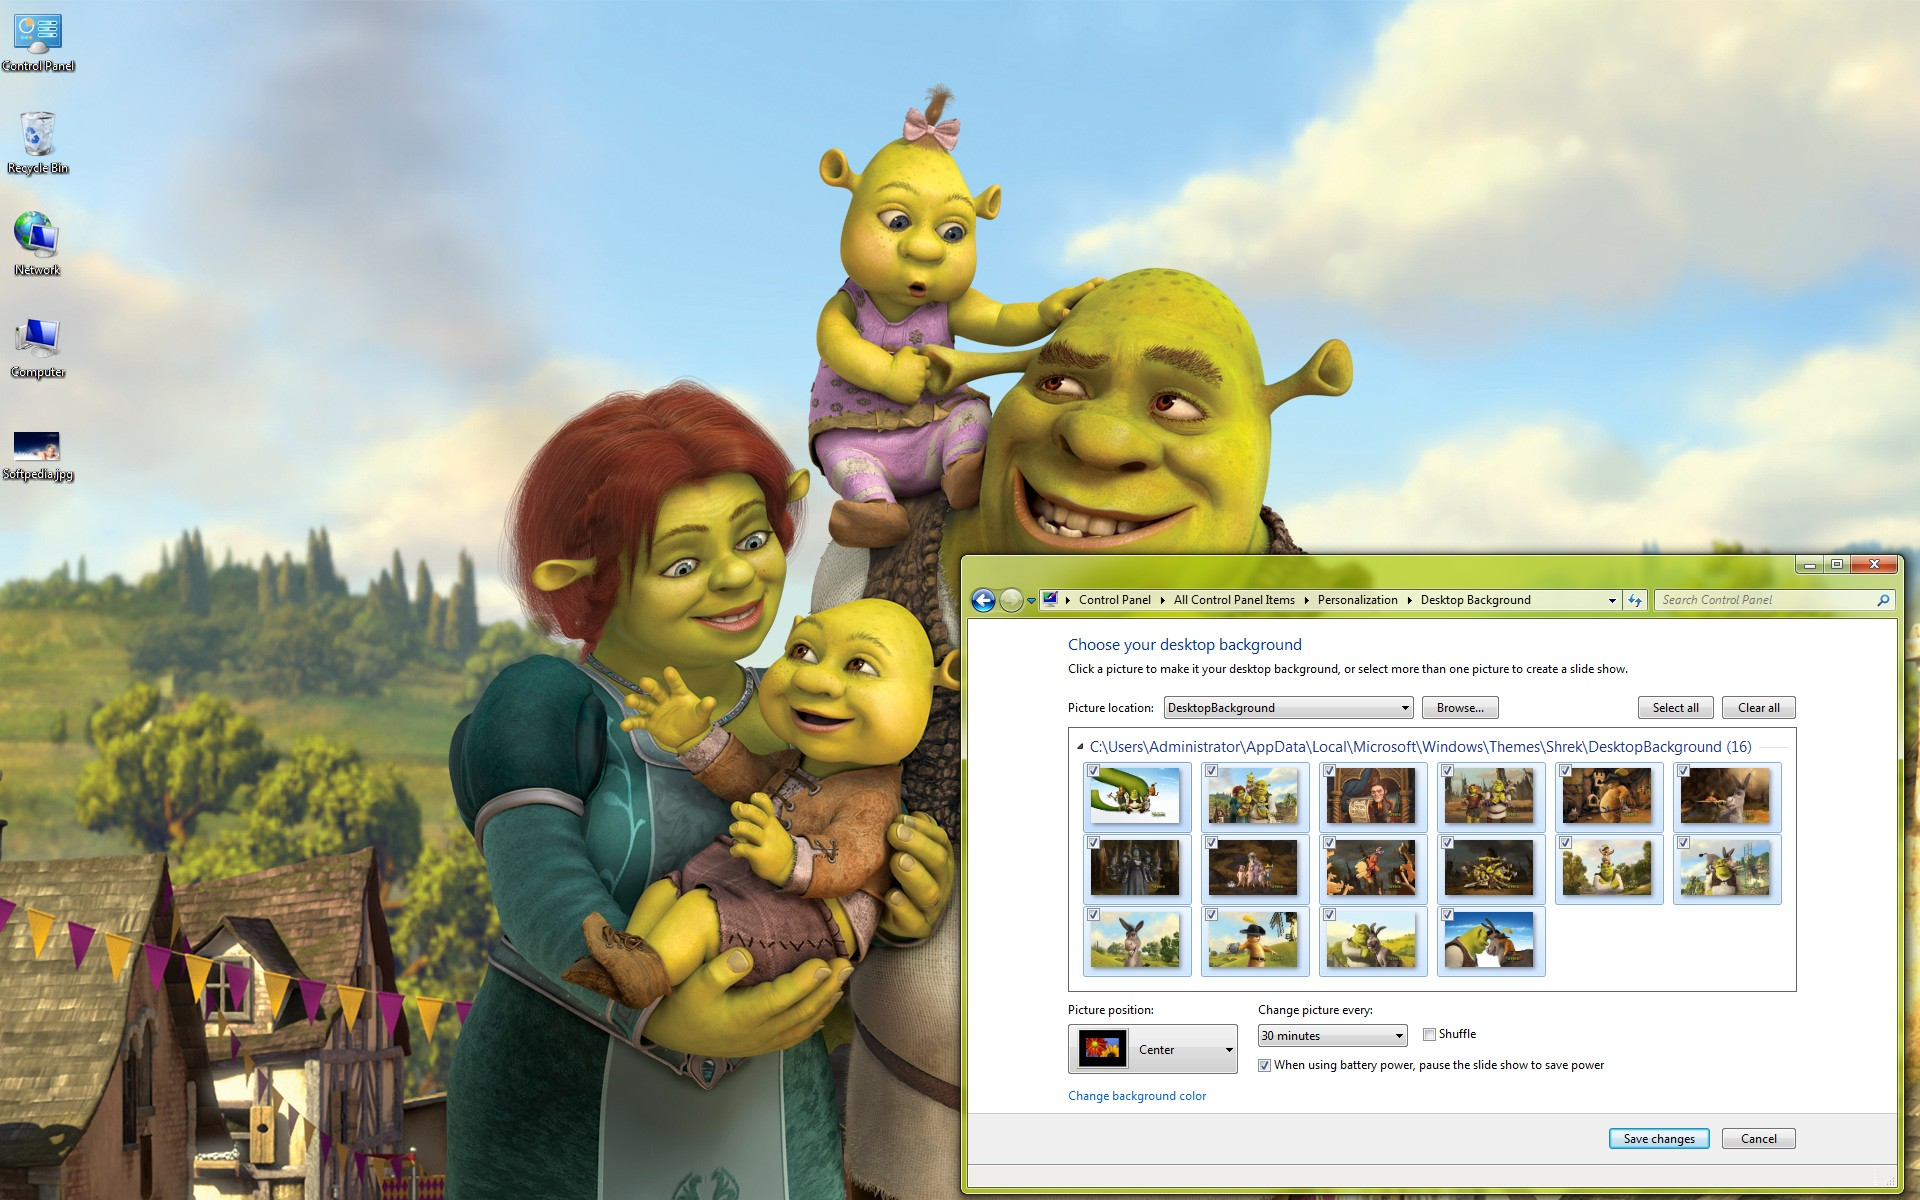 Download Shrek Forever After Windows 7 Theme